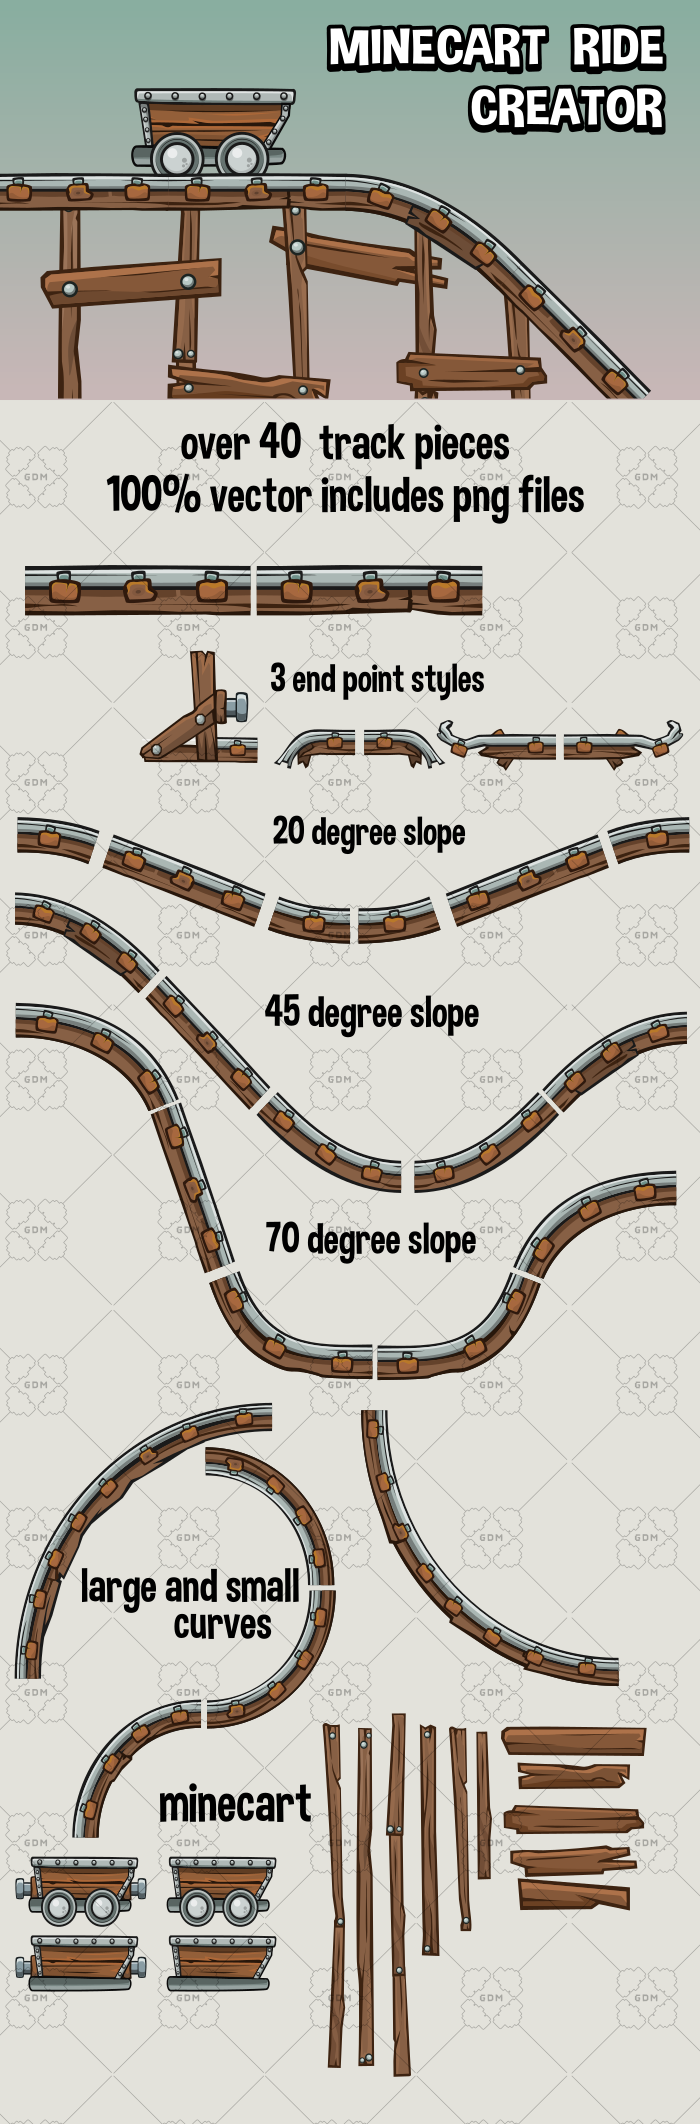 Mine cart track creator kit